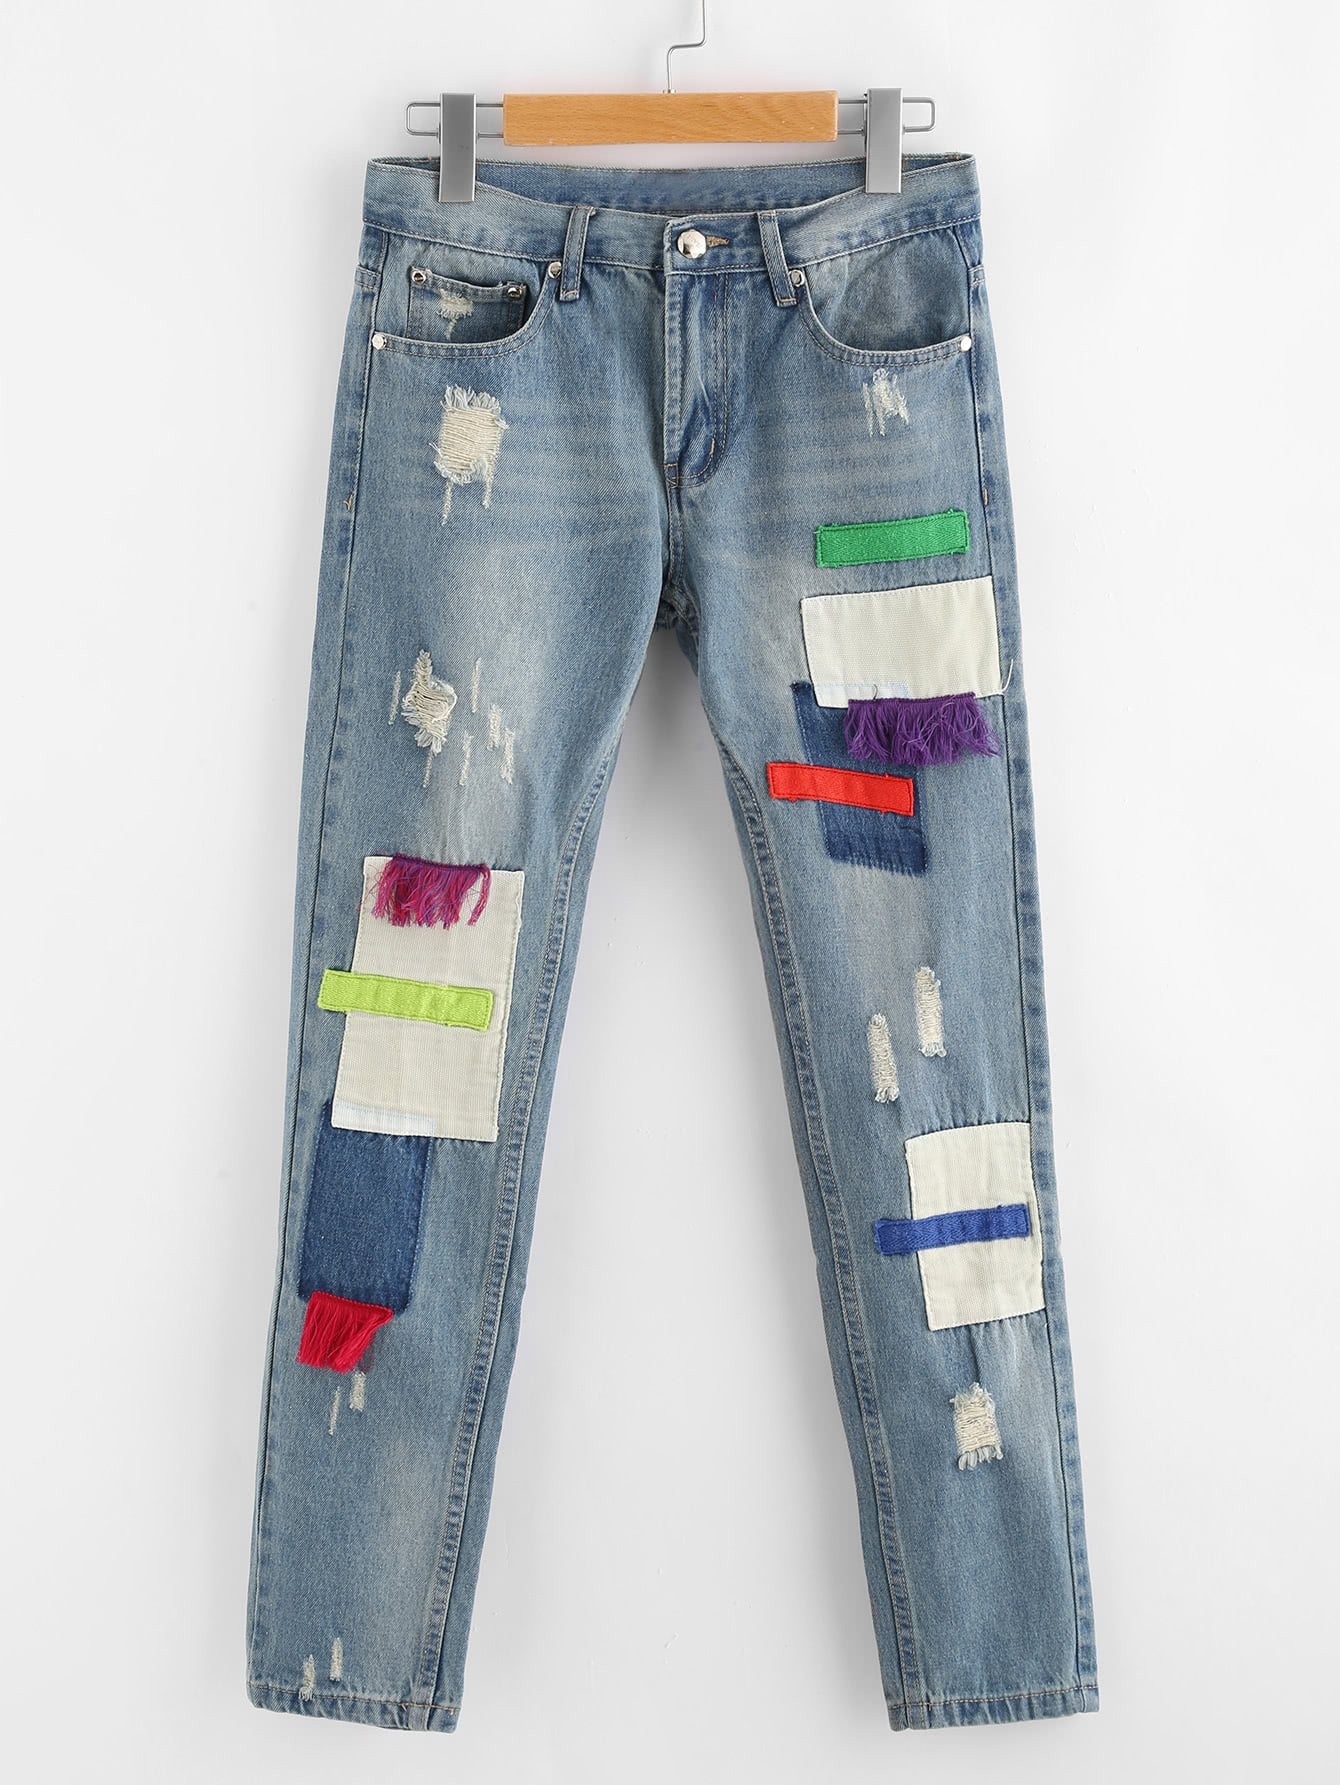 Ripped Patched Distressed Jeans patched embroidered jeans